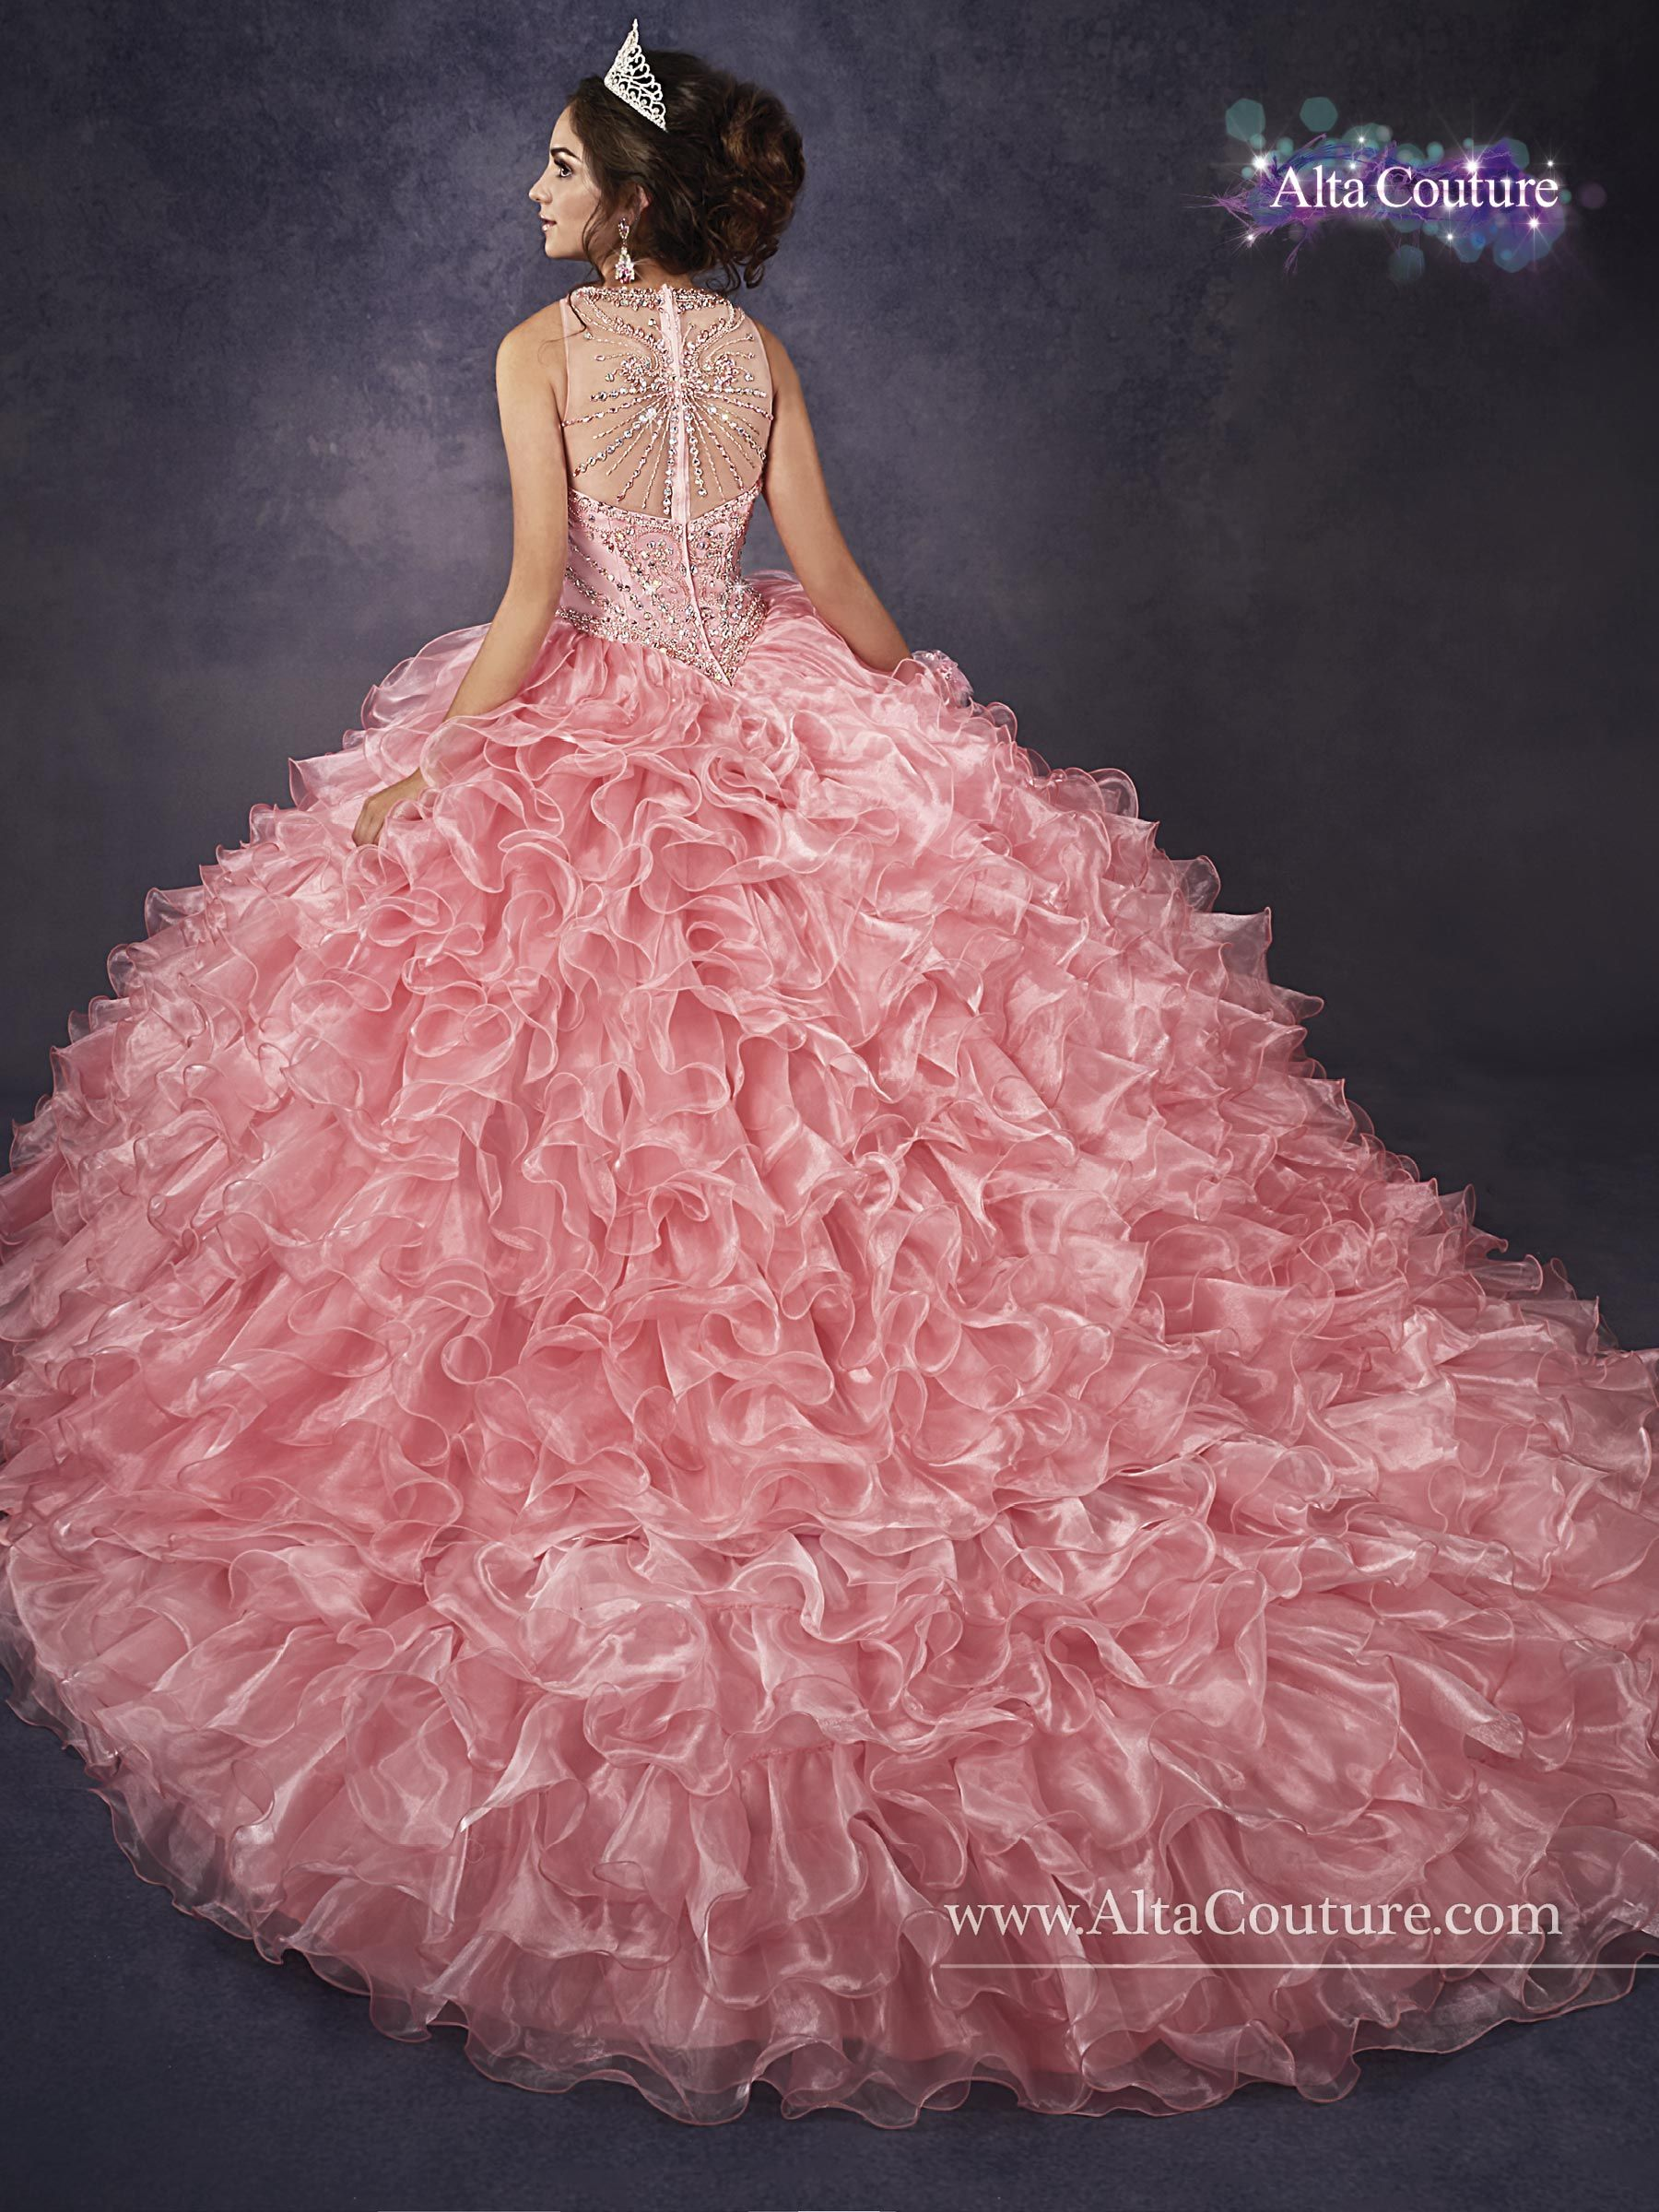 Collection quinceanera alta couture style s17 4t185 for Alta couture